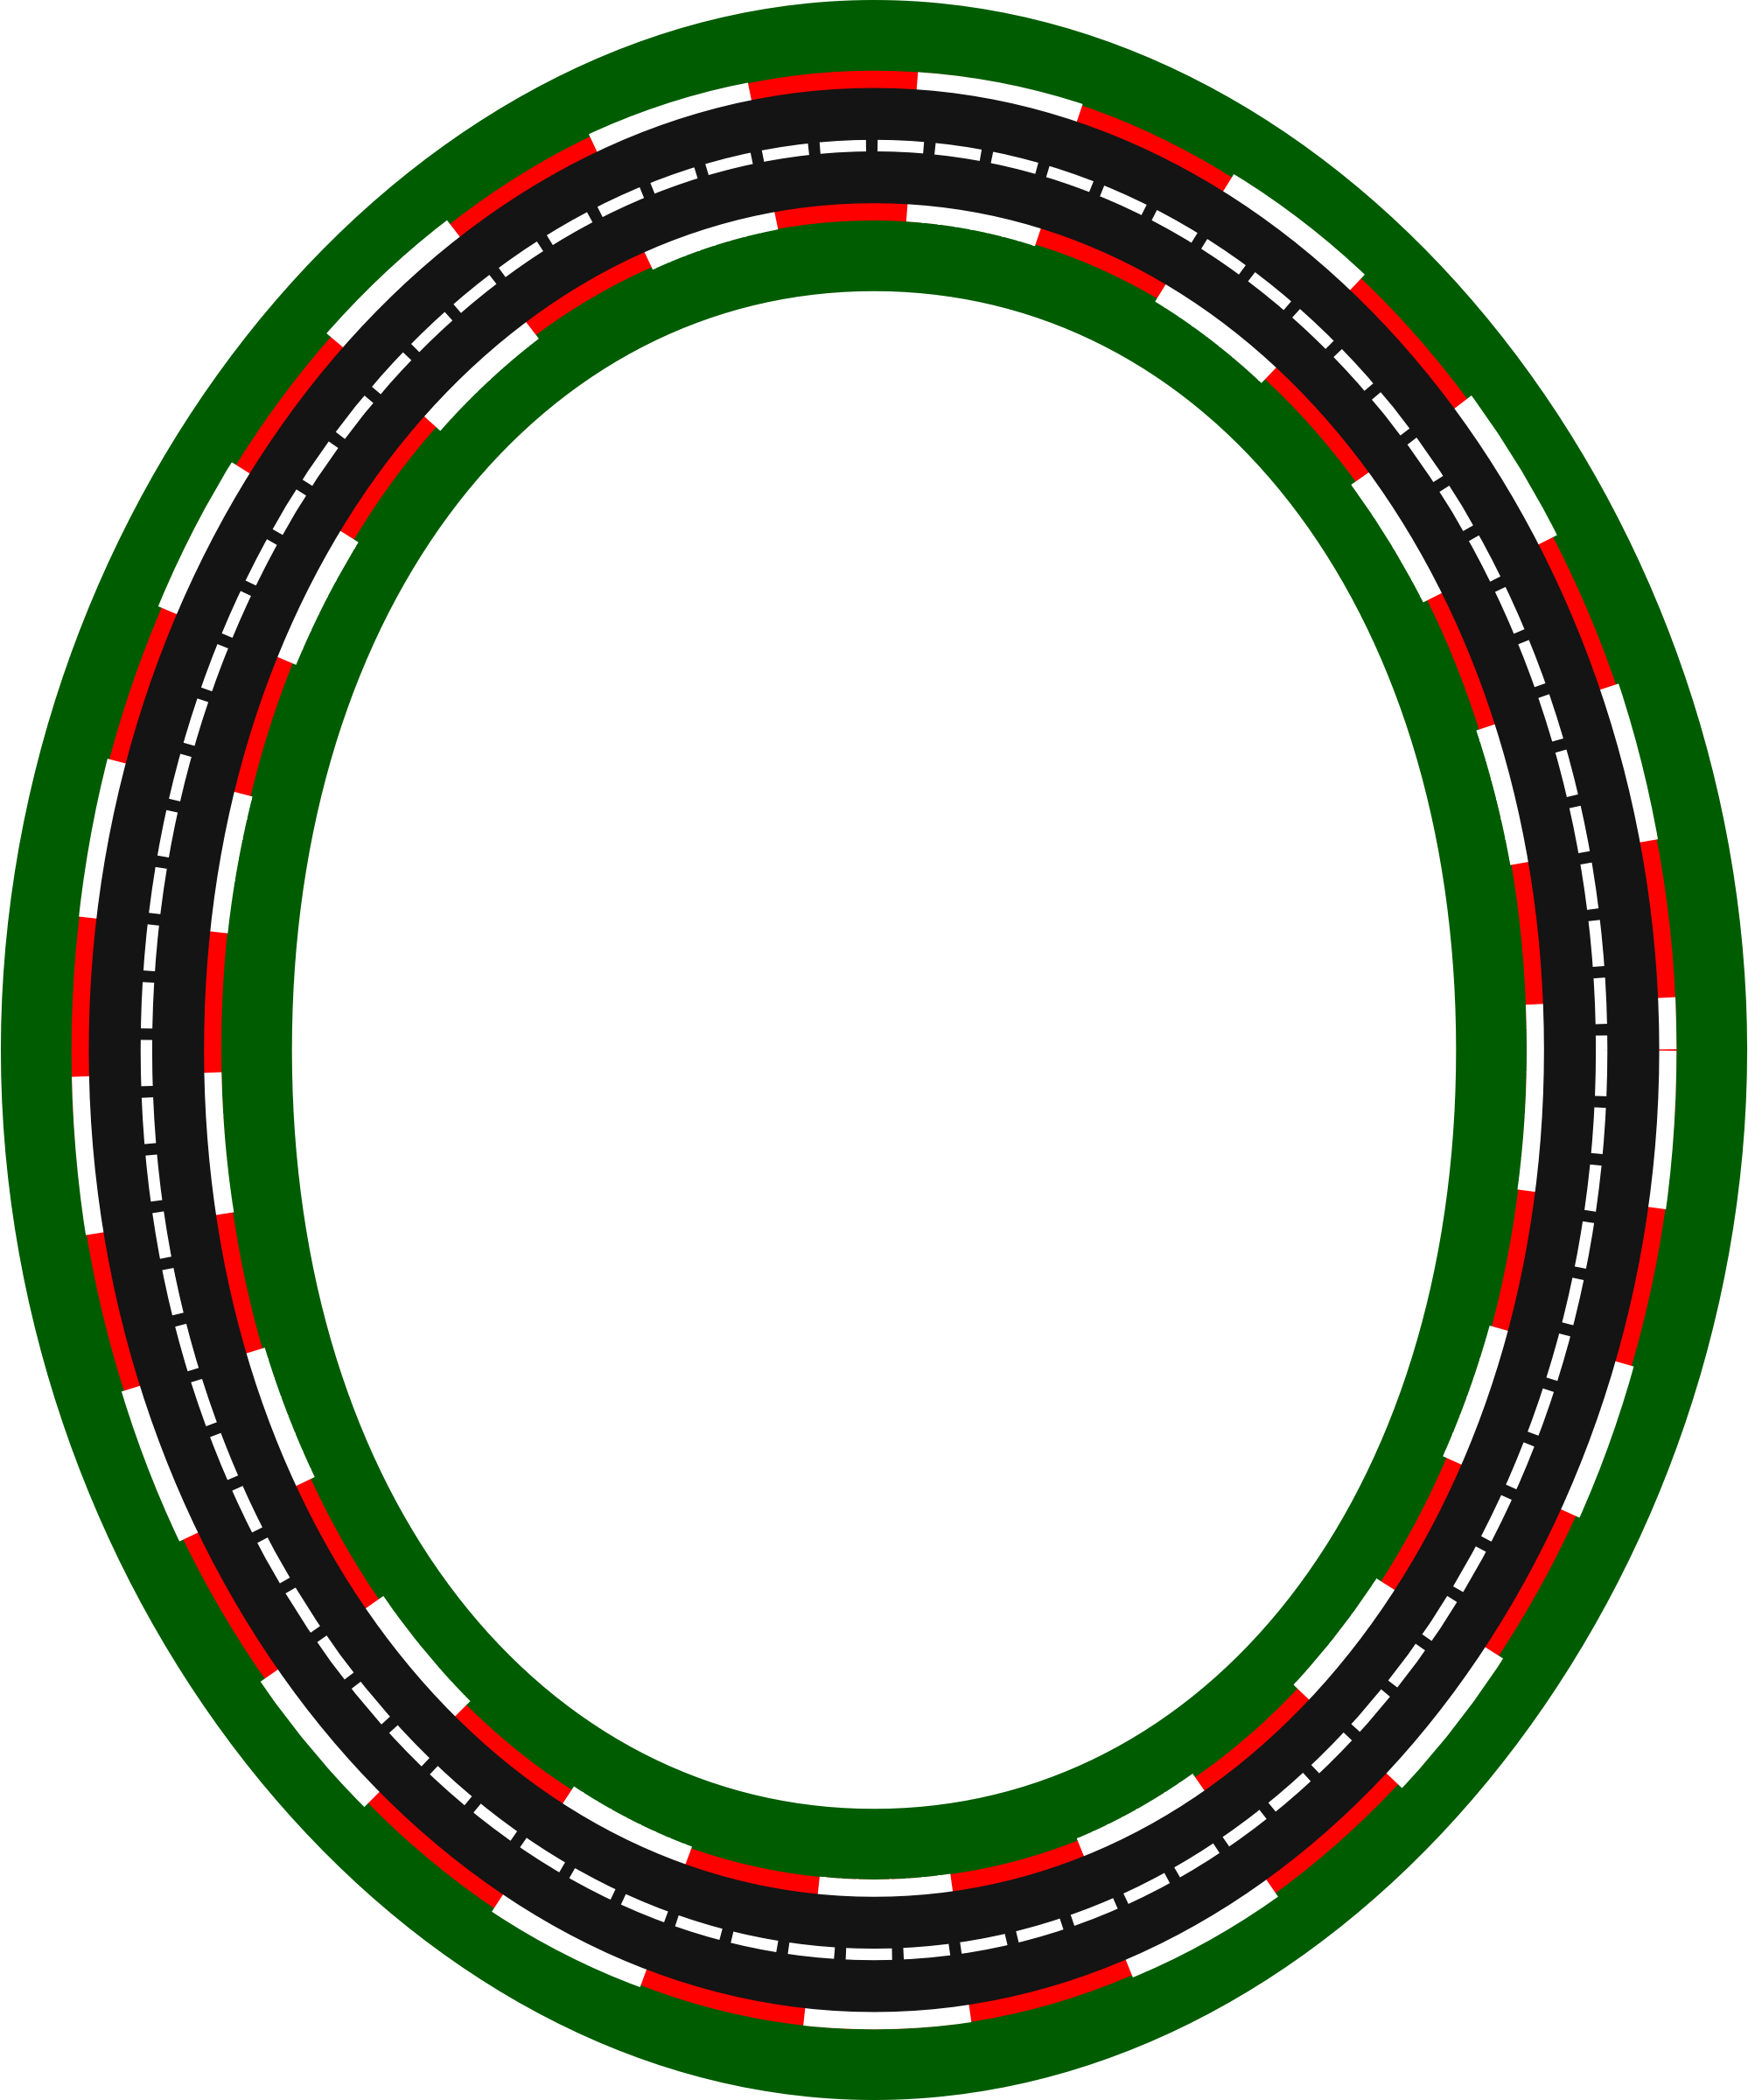 Frame . Circle clipart road